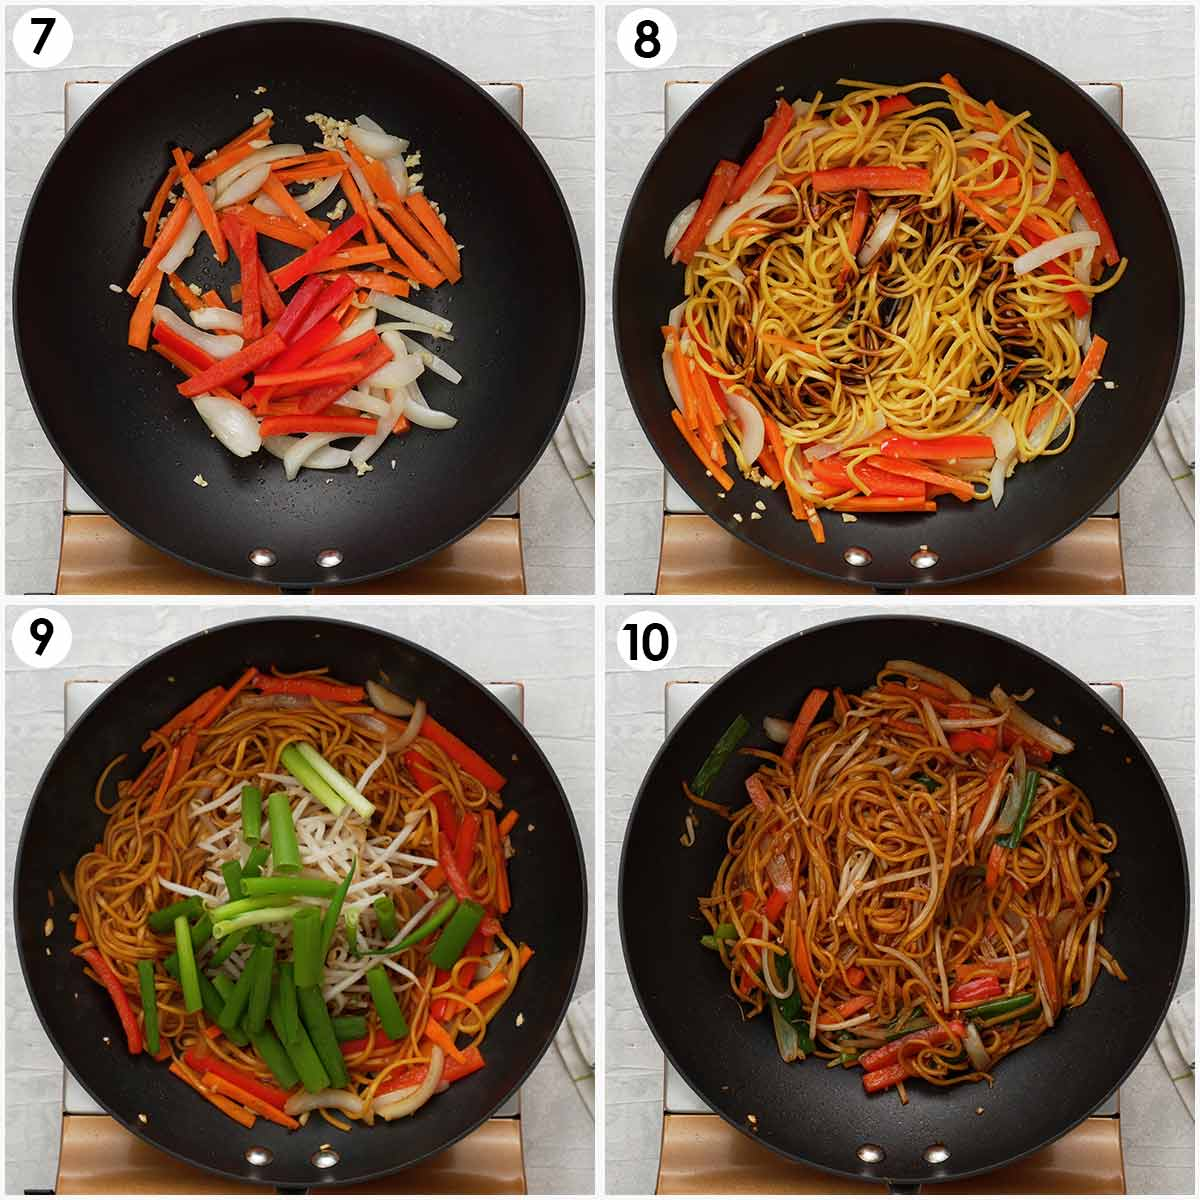 Four image collage showing how to cook the stir fried noodles.